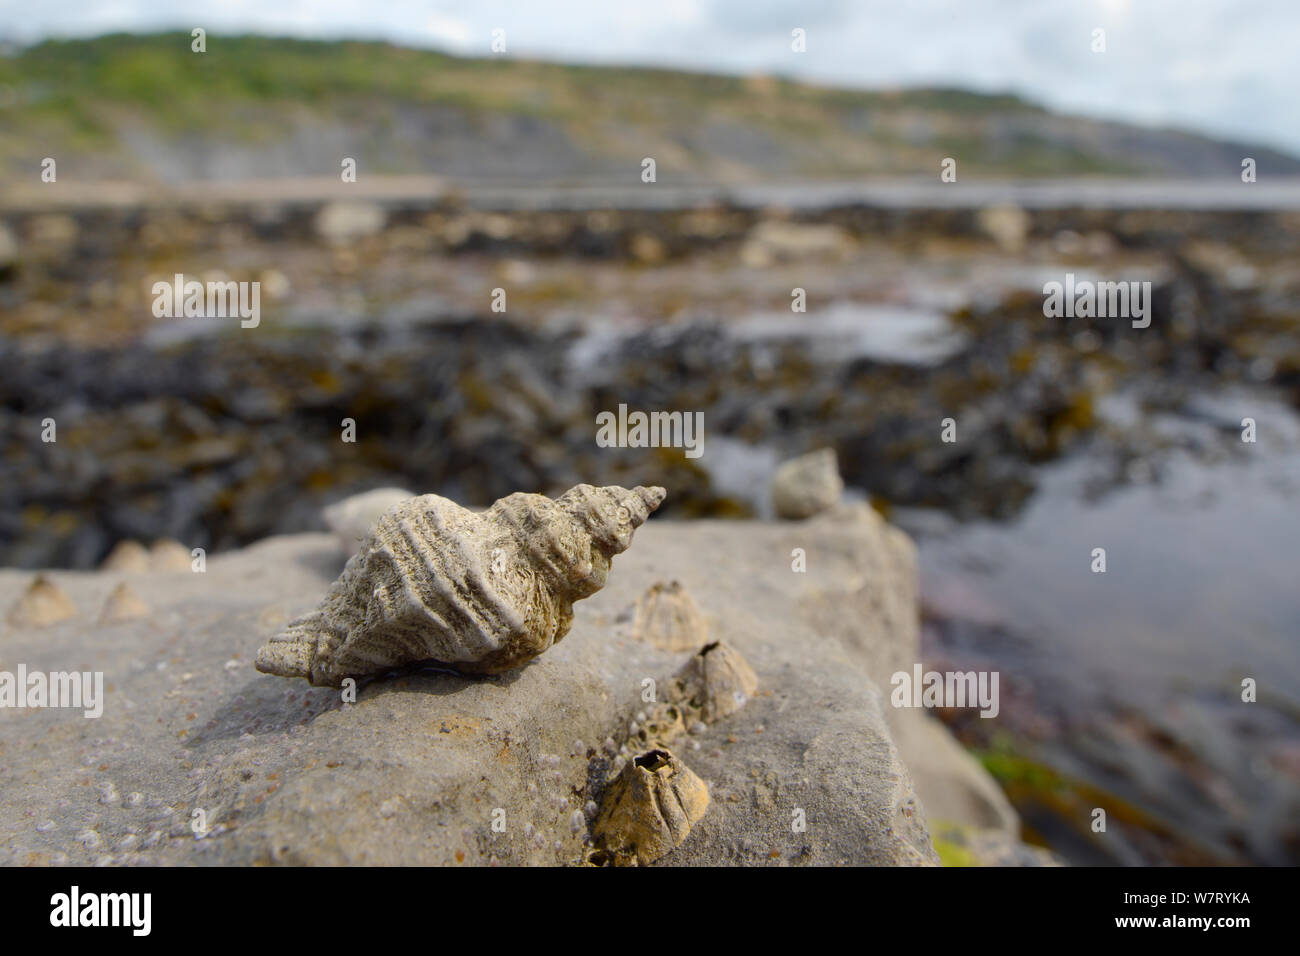 European oyster drill / Sting winkle (Ocenebra erinacea) a pest of oyster beds, on rocks low on the shore alongside Acorn barnacles (Balanus perforatus) exposed at low tide, with seaweed, rock pools and the sea in the background, Lyme Regis, Dorset, UK, May. Stock Photo